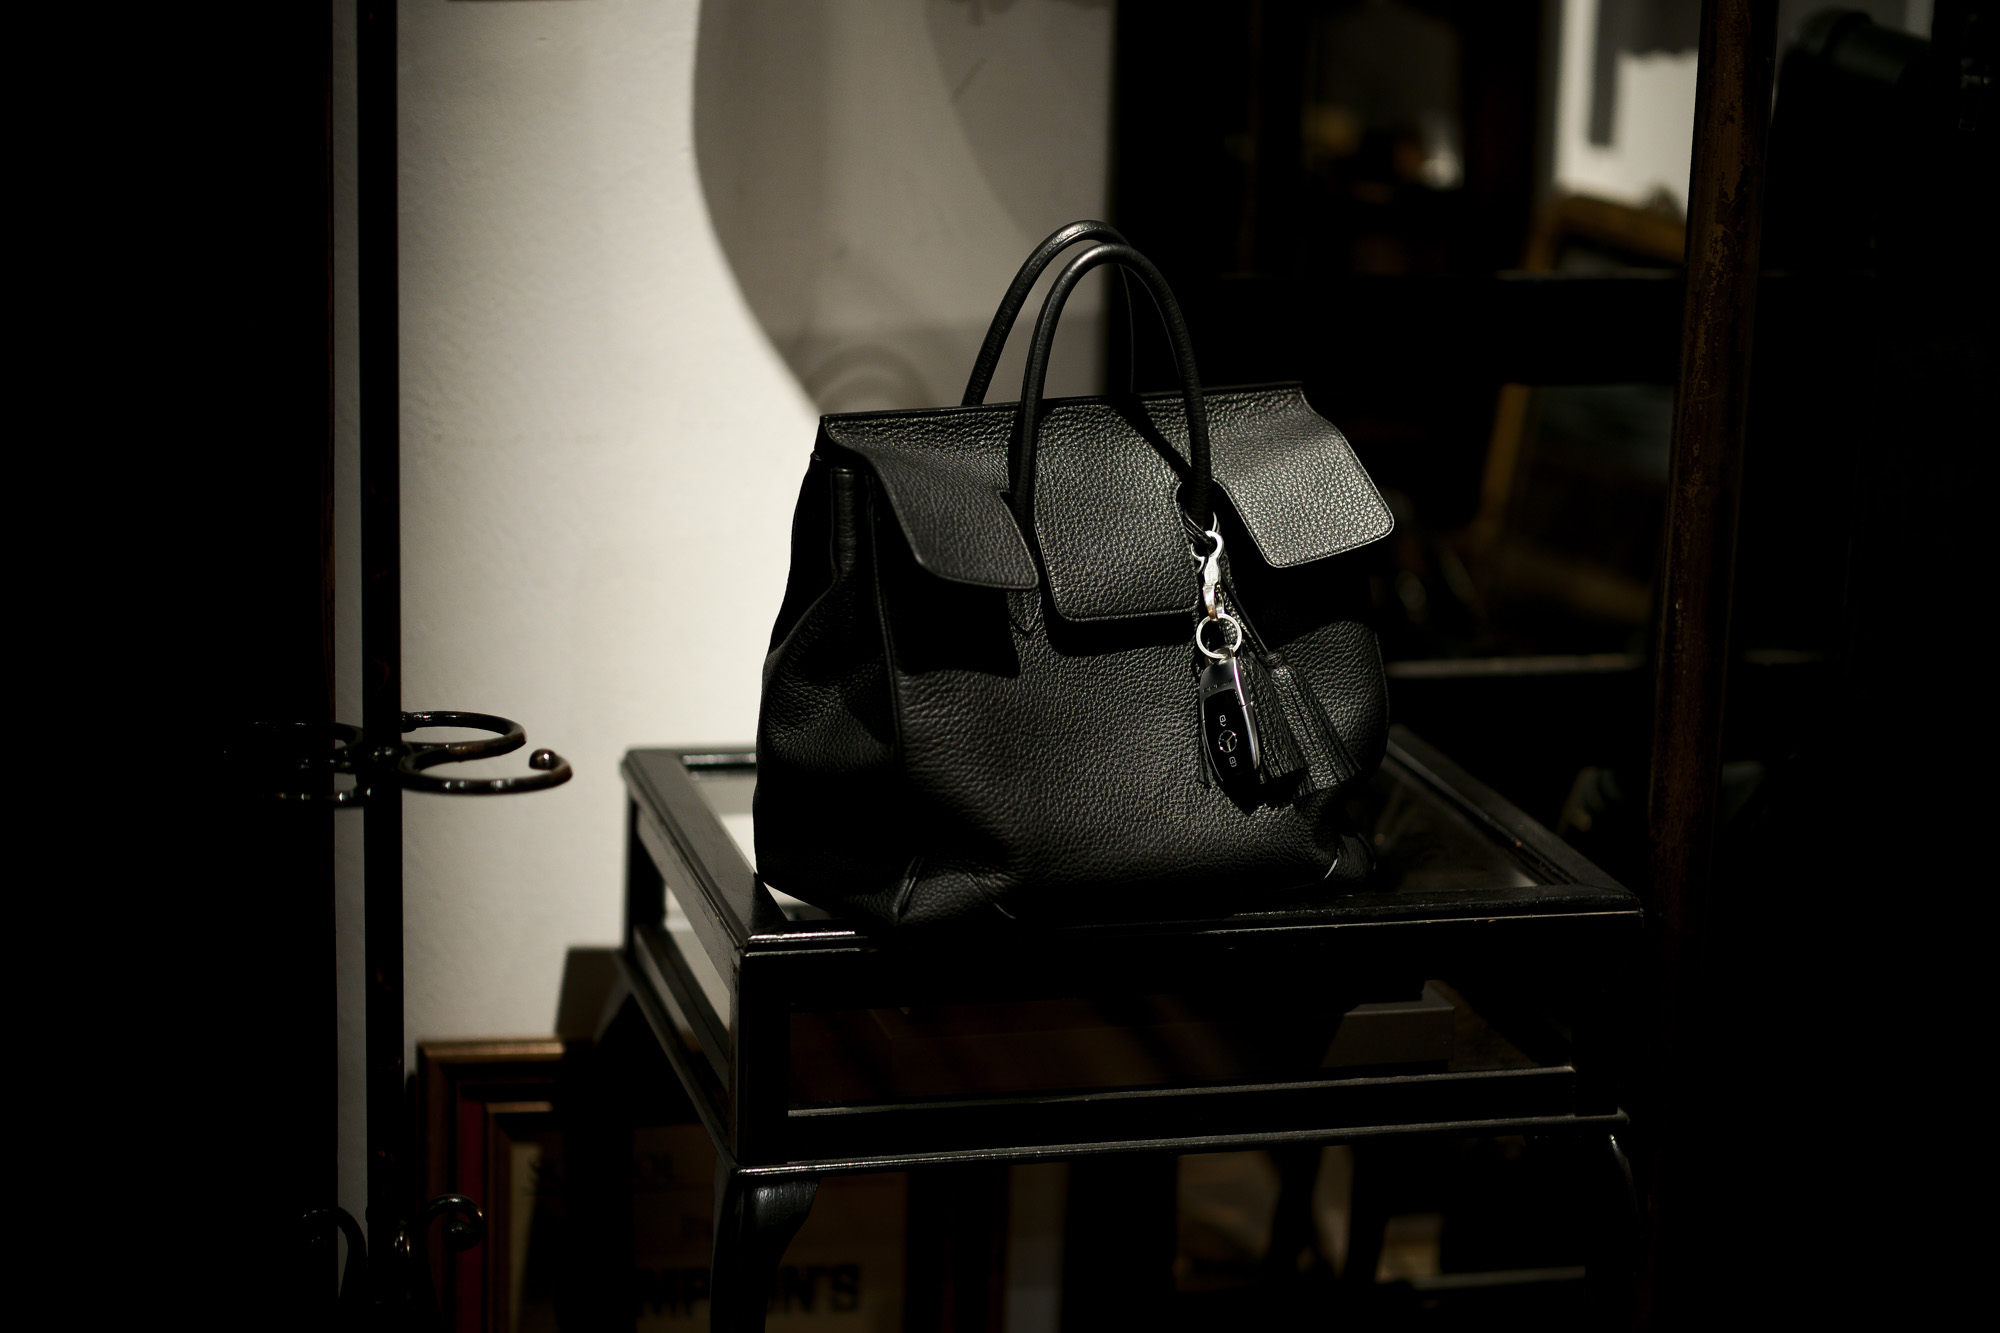 ACATE × cuervo bopoha アカーテ × クエルボ ヴァローナ GHIBLI ギブリ Montblanc leather モンブランレザー トートバッグ レザーバッグ NERO ネロ MADE IN ITALY イタリア製 2021 Special Special Special Model 愛知 名古屋 altoediritto アルトエデリット レザーバック コラボレーション Wネーム